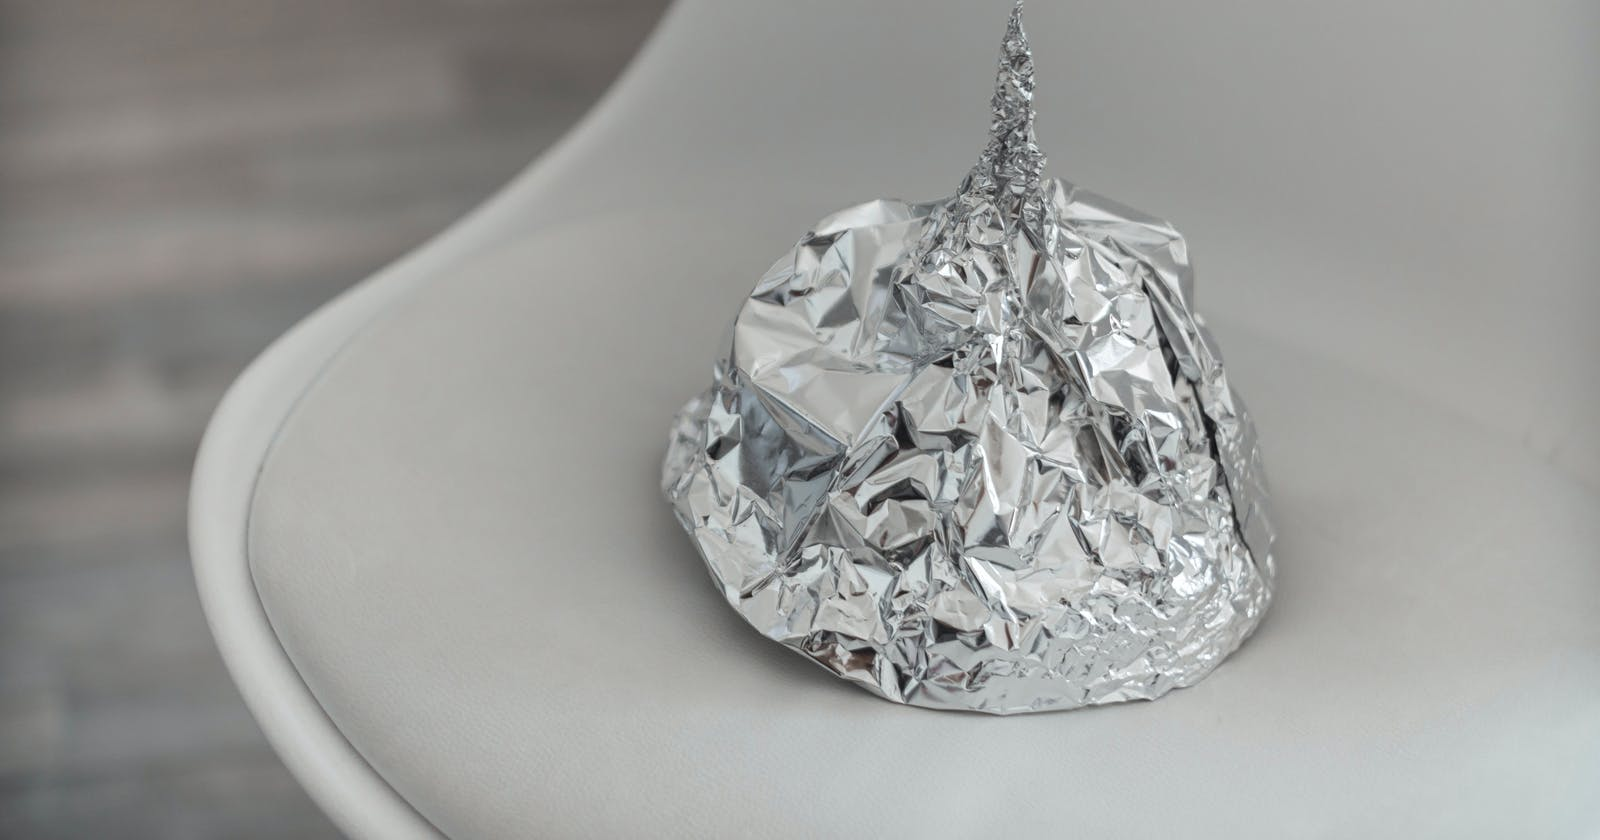 It's Never Too Soon to be Fitted for a Tinfoil Hat